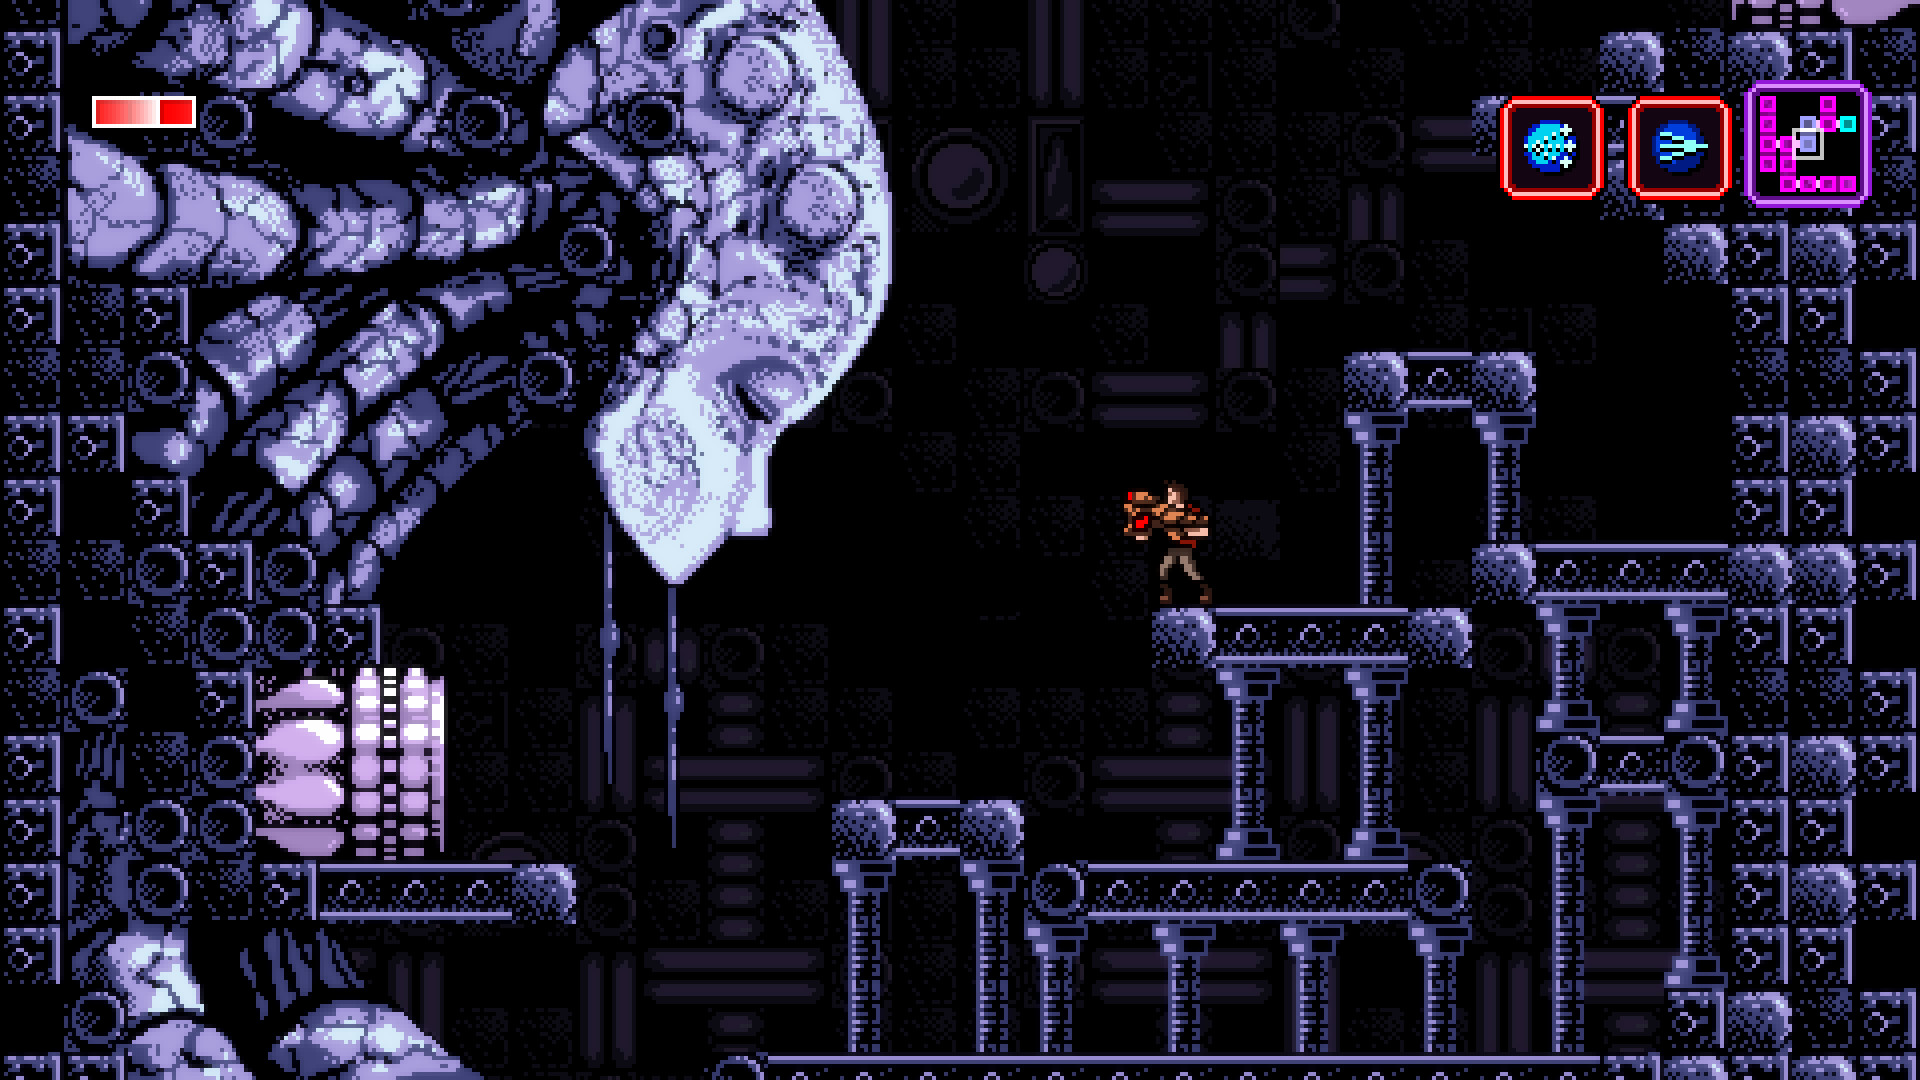 Epic Store version of Axiom Verge briefly crashed because it was